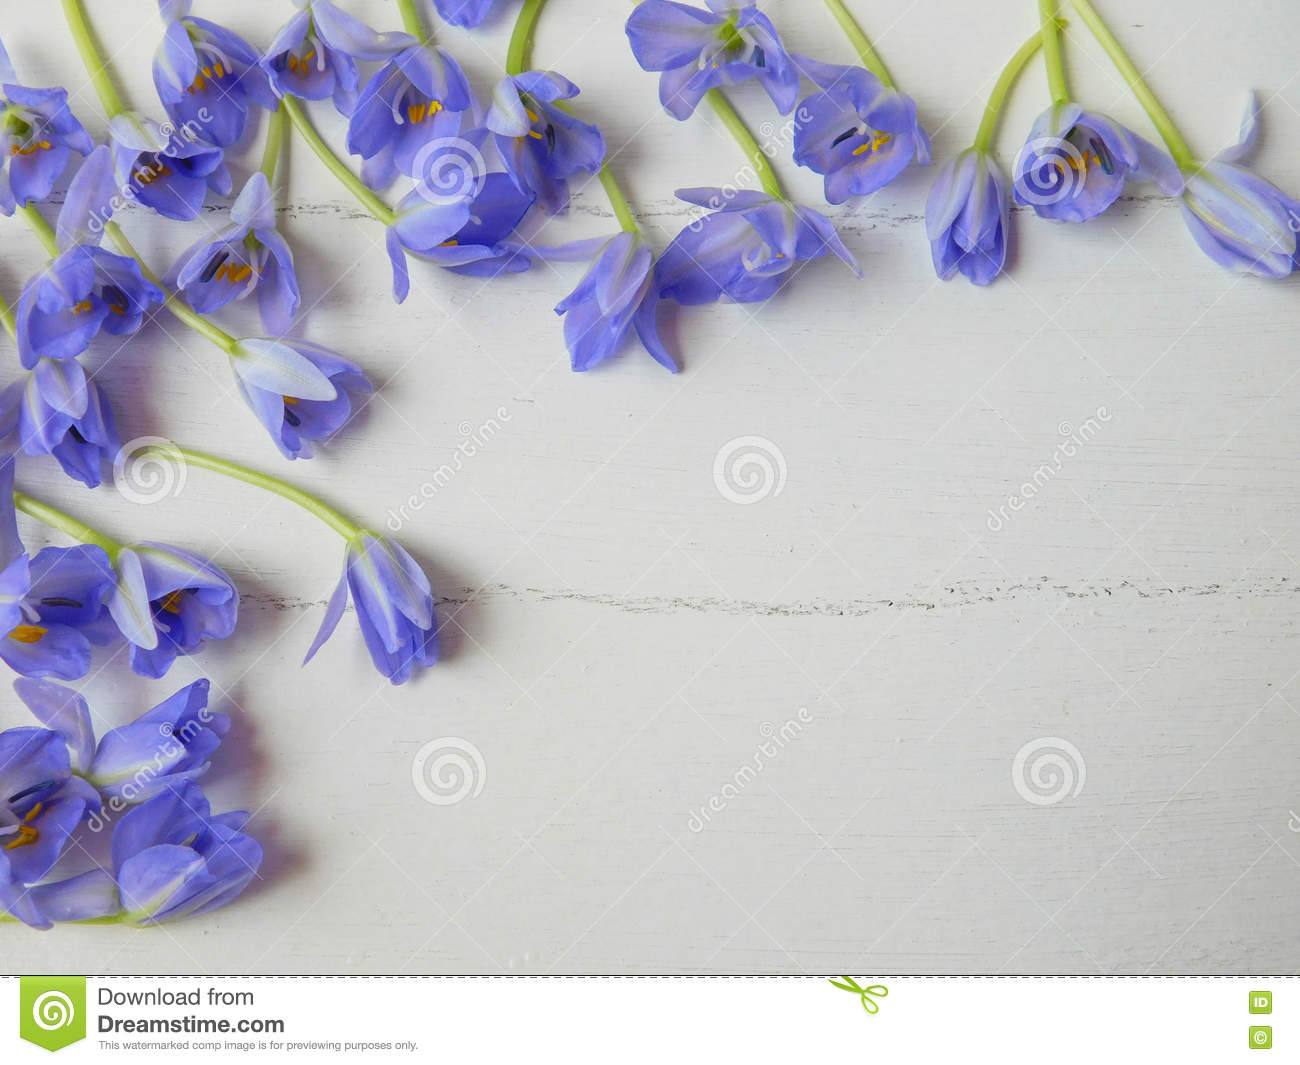 Small Violet Flowers On White Background Stock Image - Image of ...